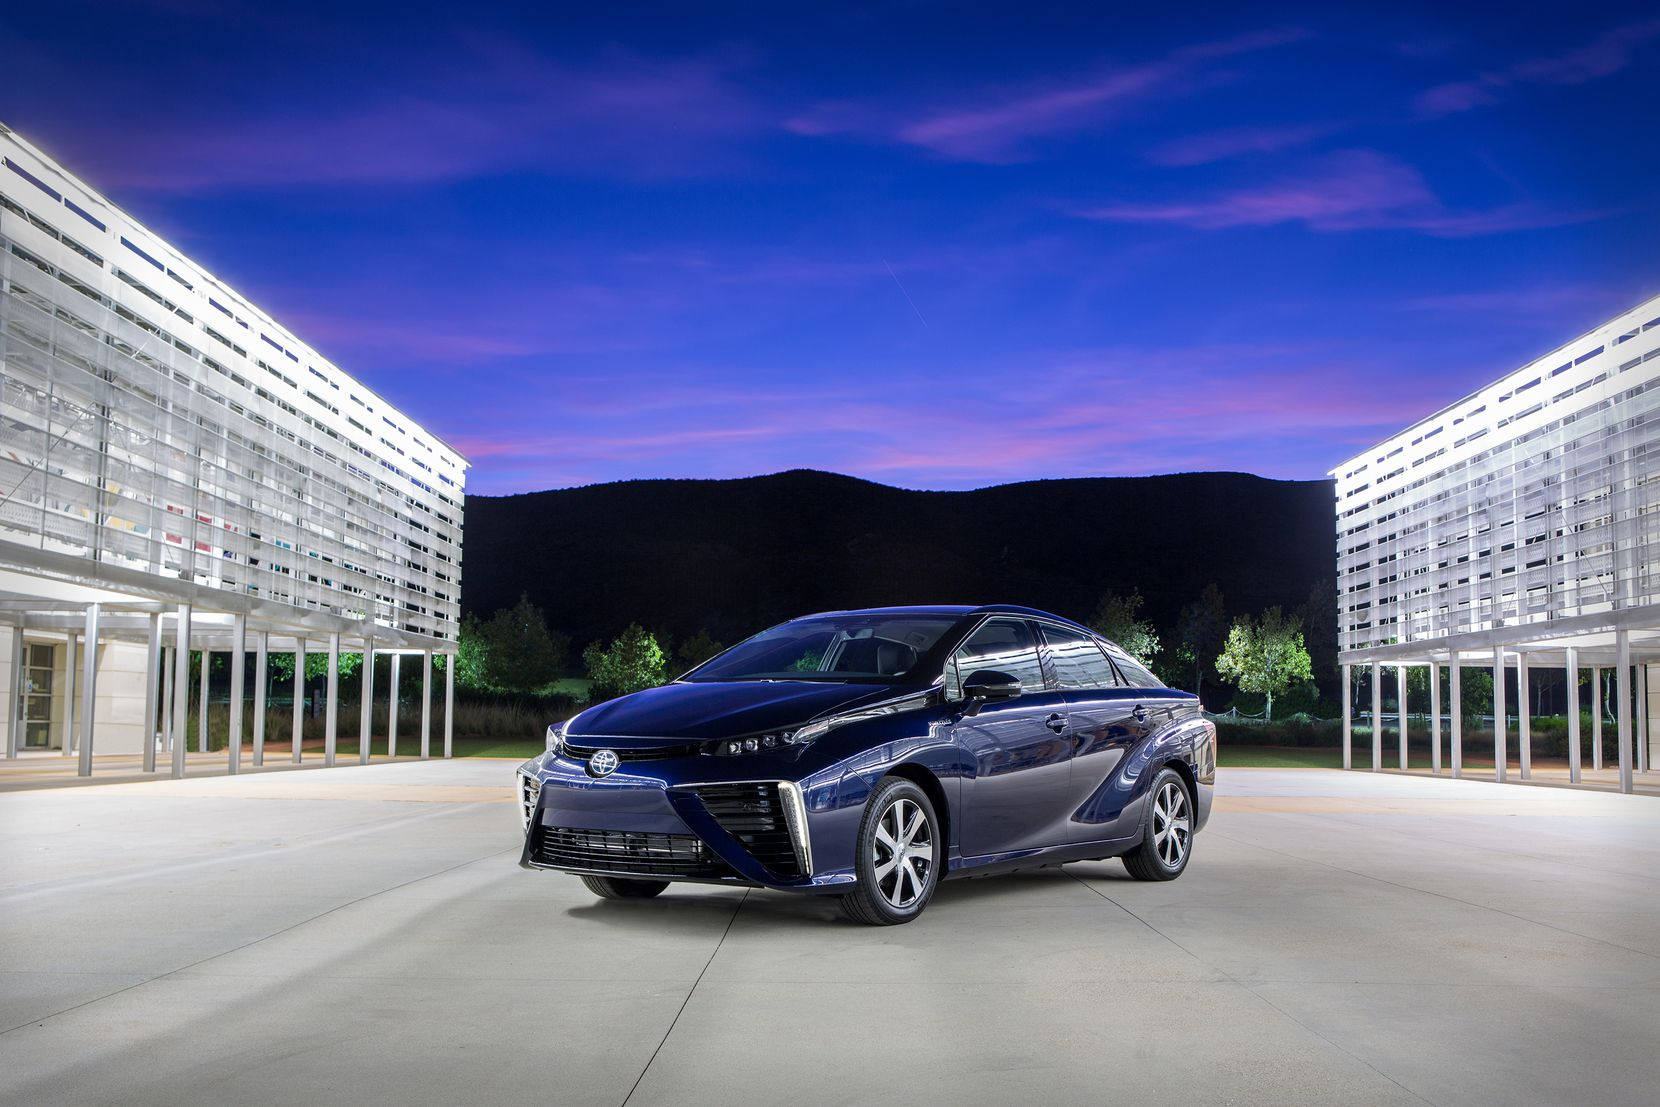 The fuel cell-powered Toyota Mirai has an estimated driving range of 312 miles.